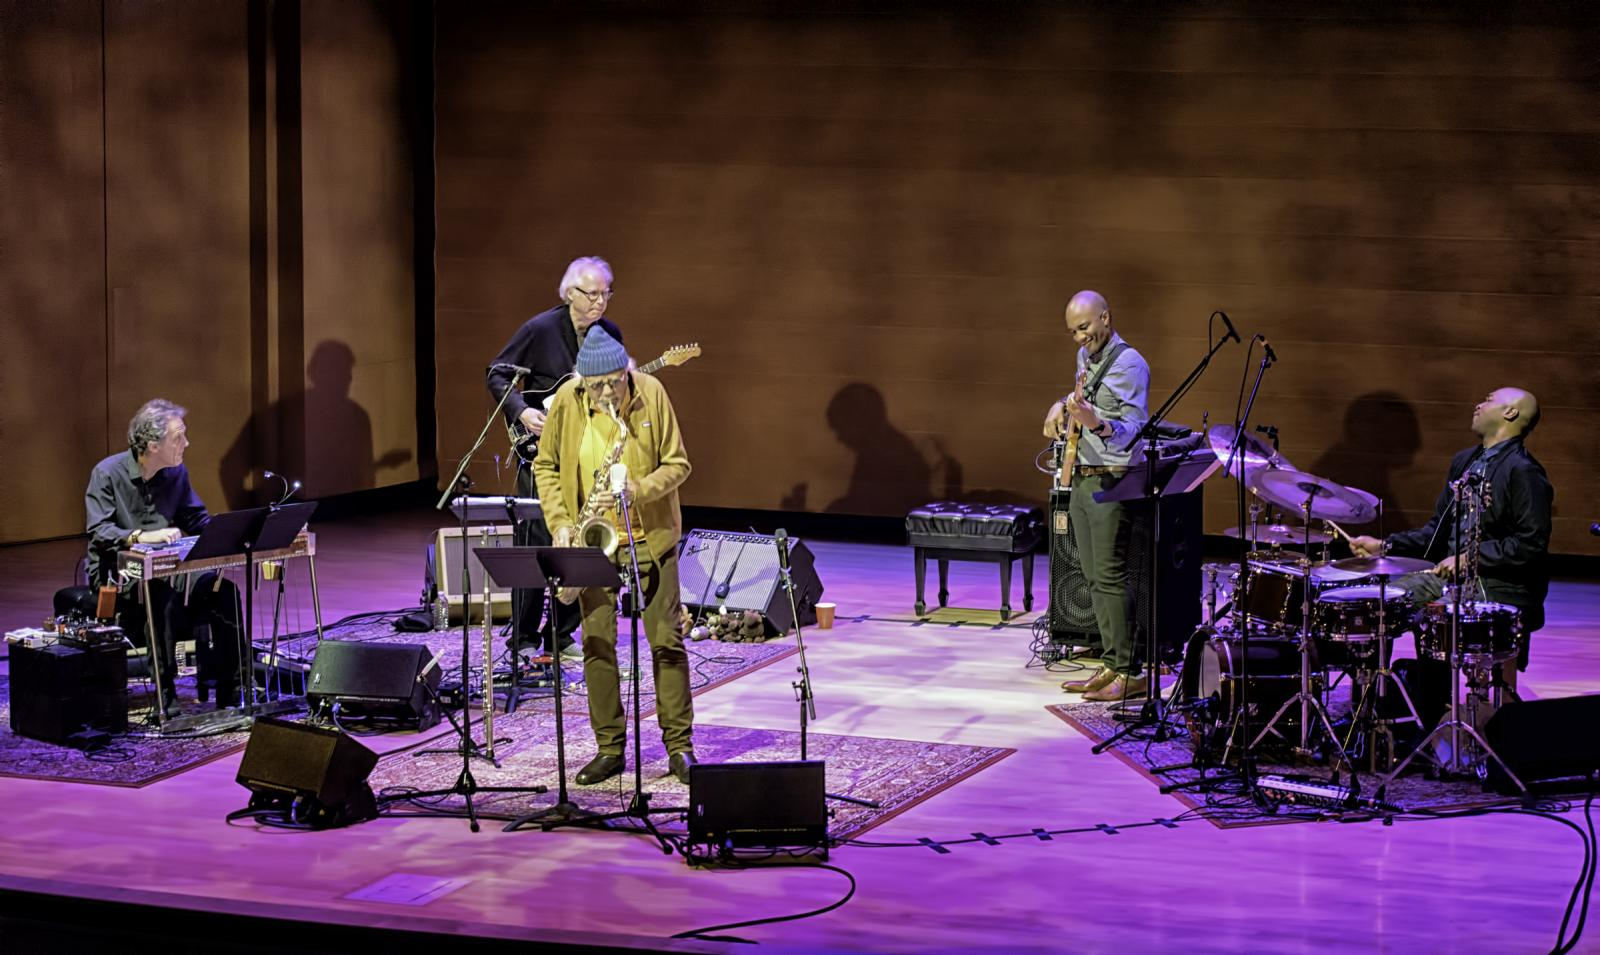 Greg Leisz, Bill Frisell, Charles Lloyd, Reuben Rogers And Eric Harland With Charles Lloyd And The Marvels At The Musical Instrument Museum (mim)